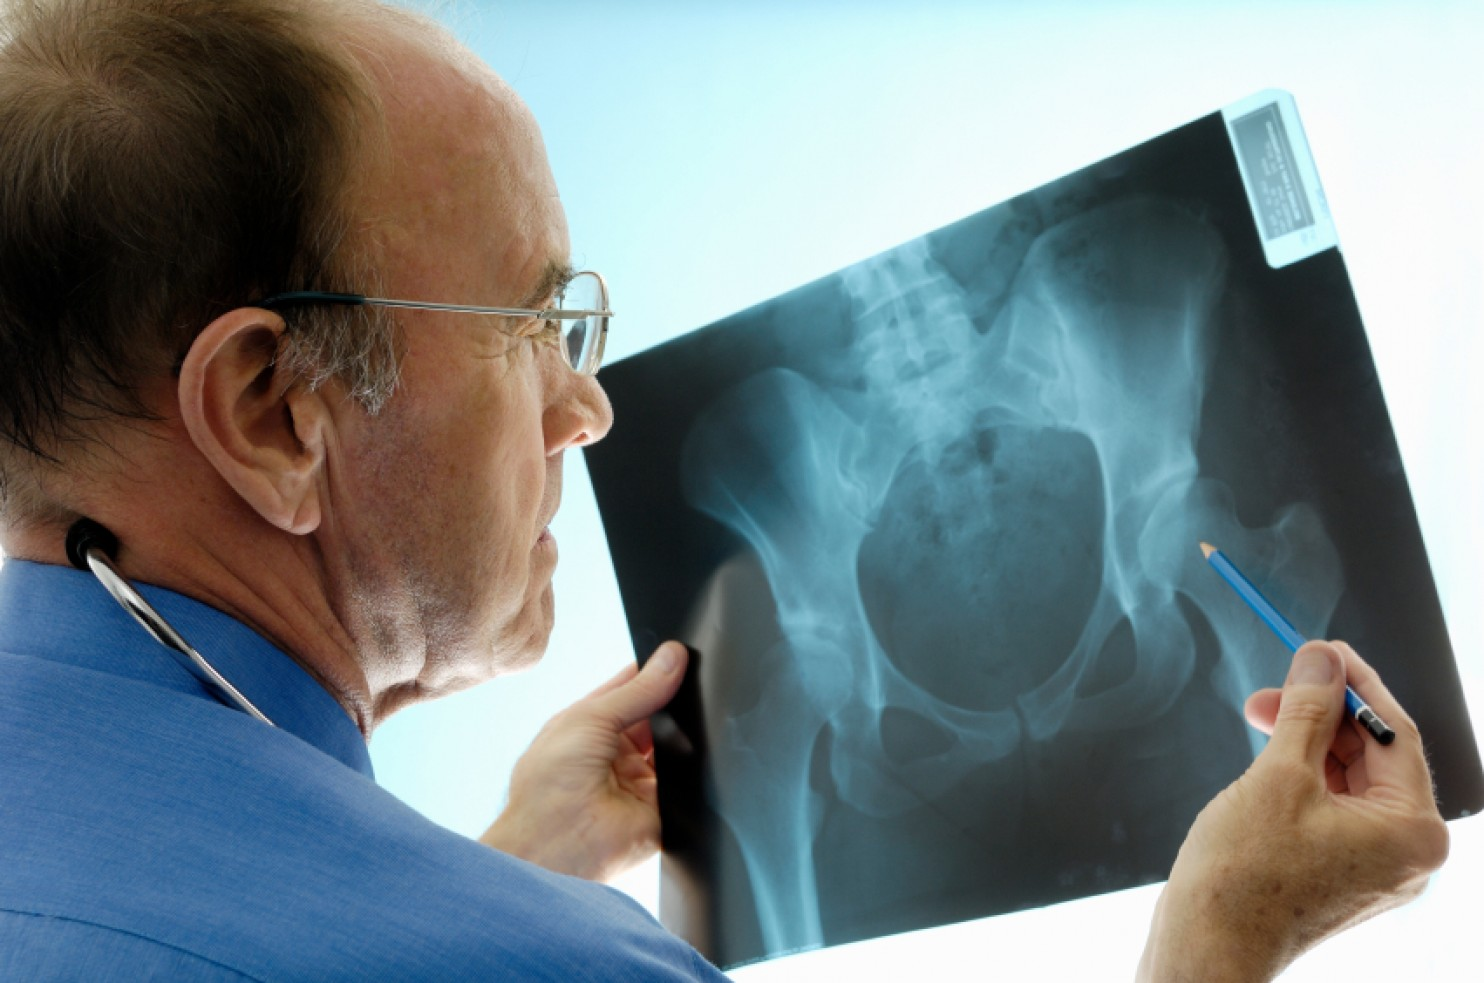 Hip Fractures in 65+ Caused by Falls